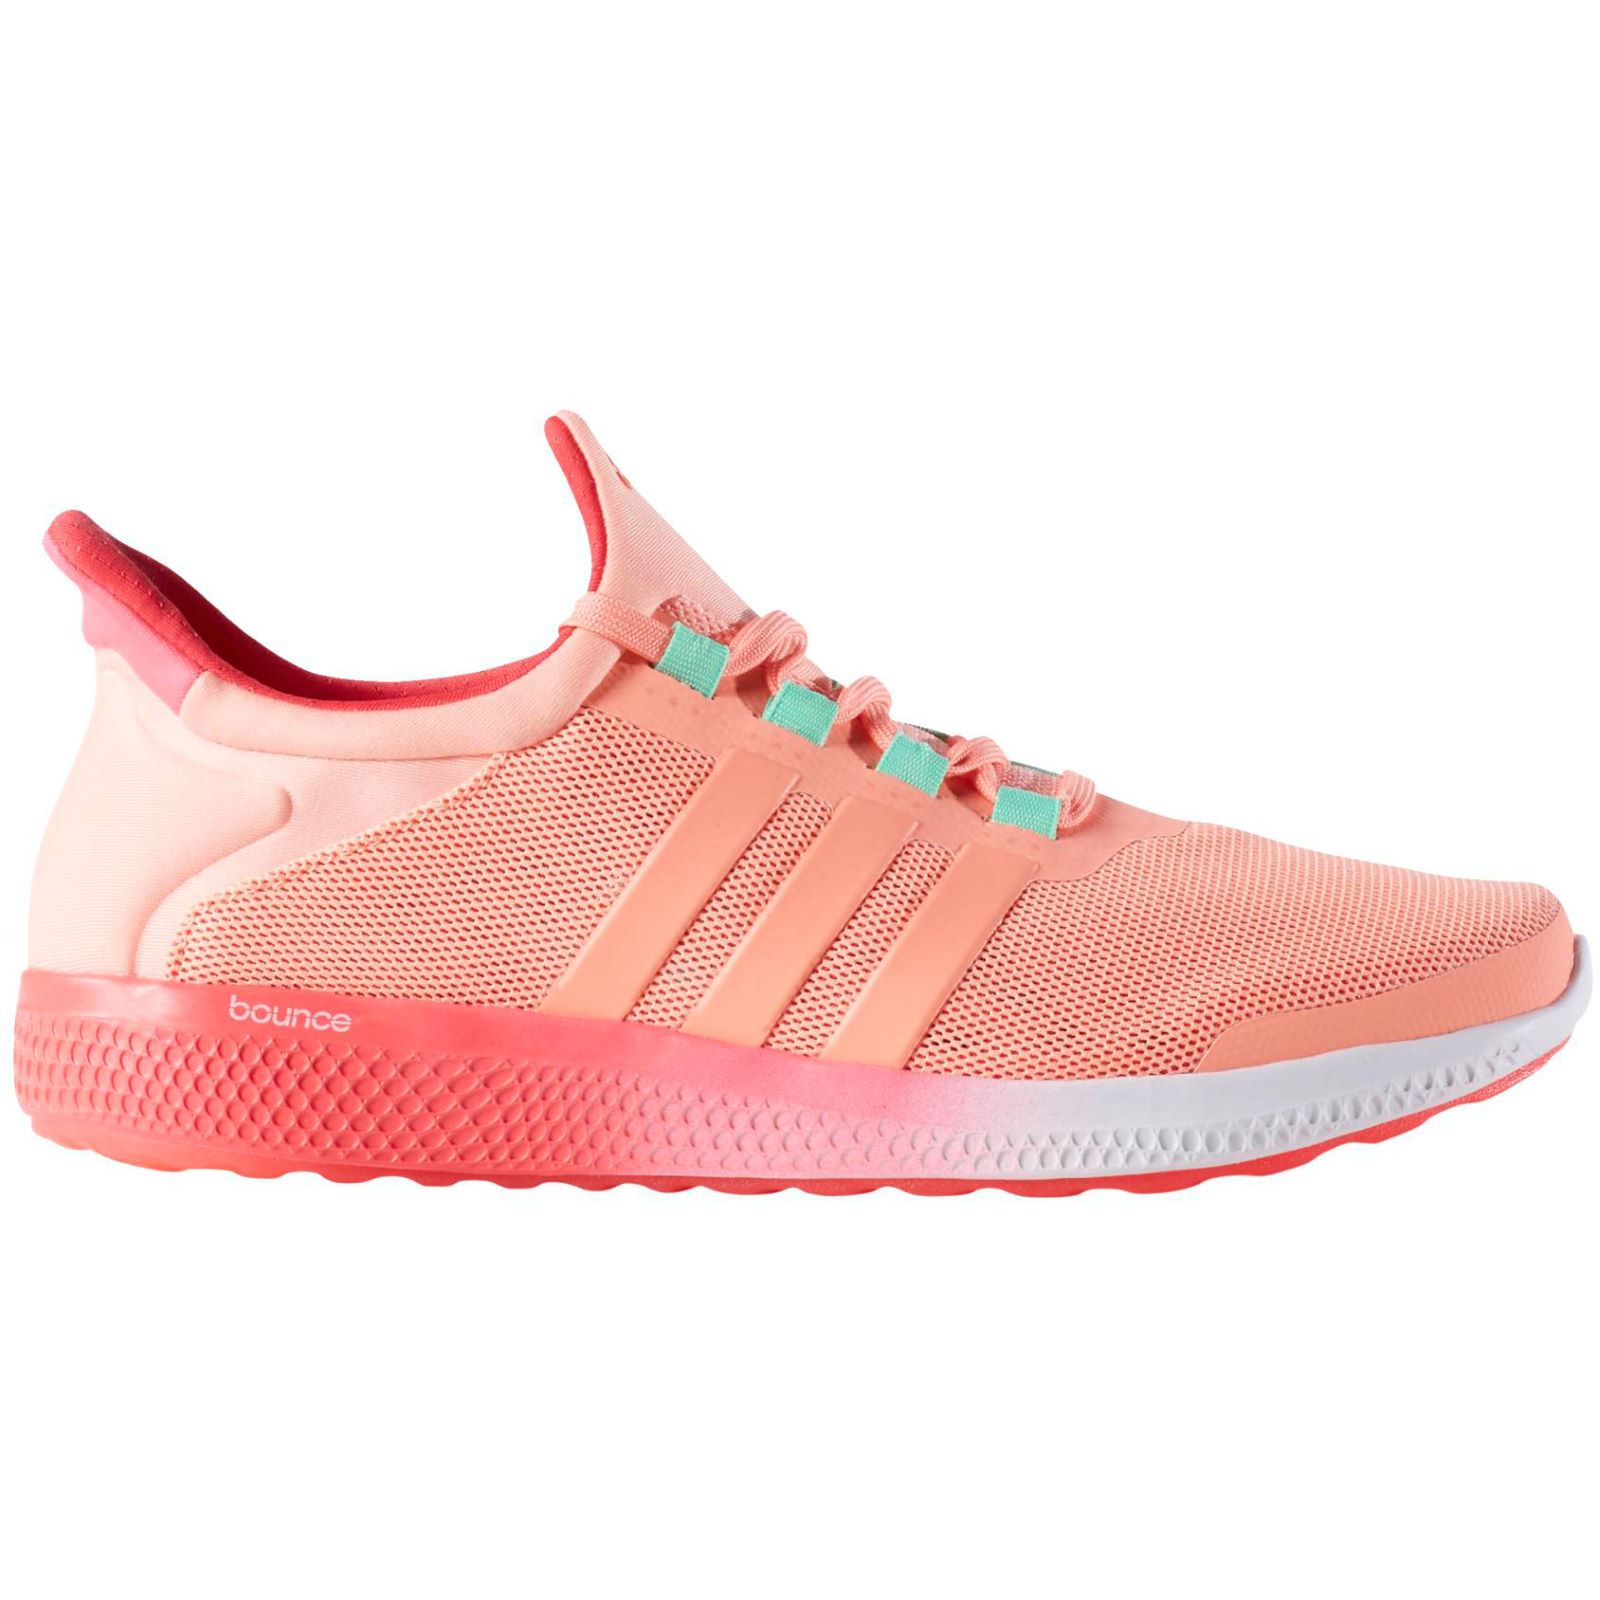 Adidas Sonic Boost Running Shoes For Women